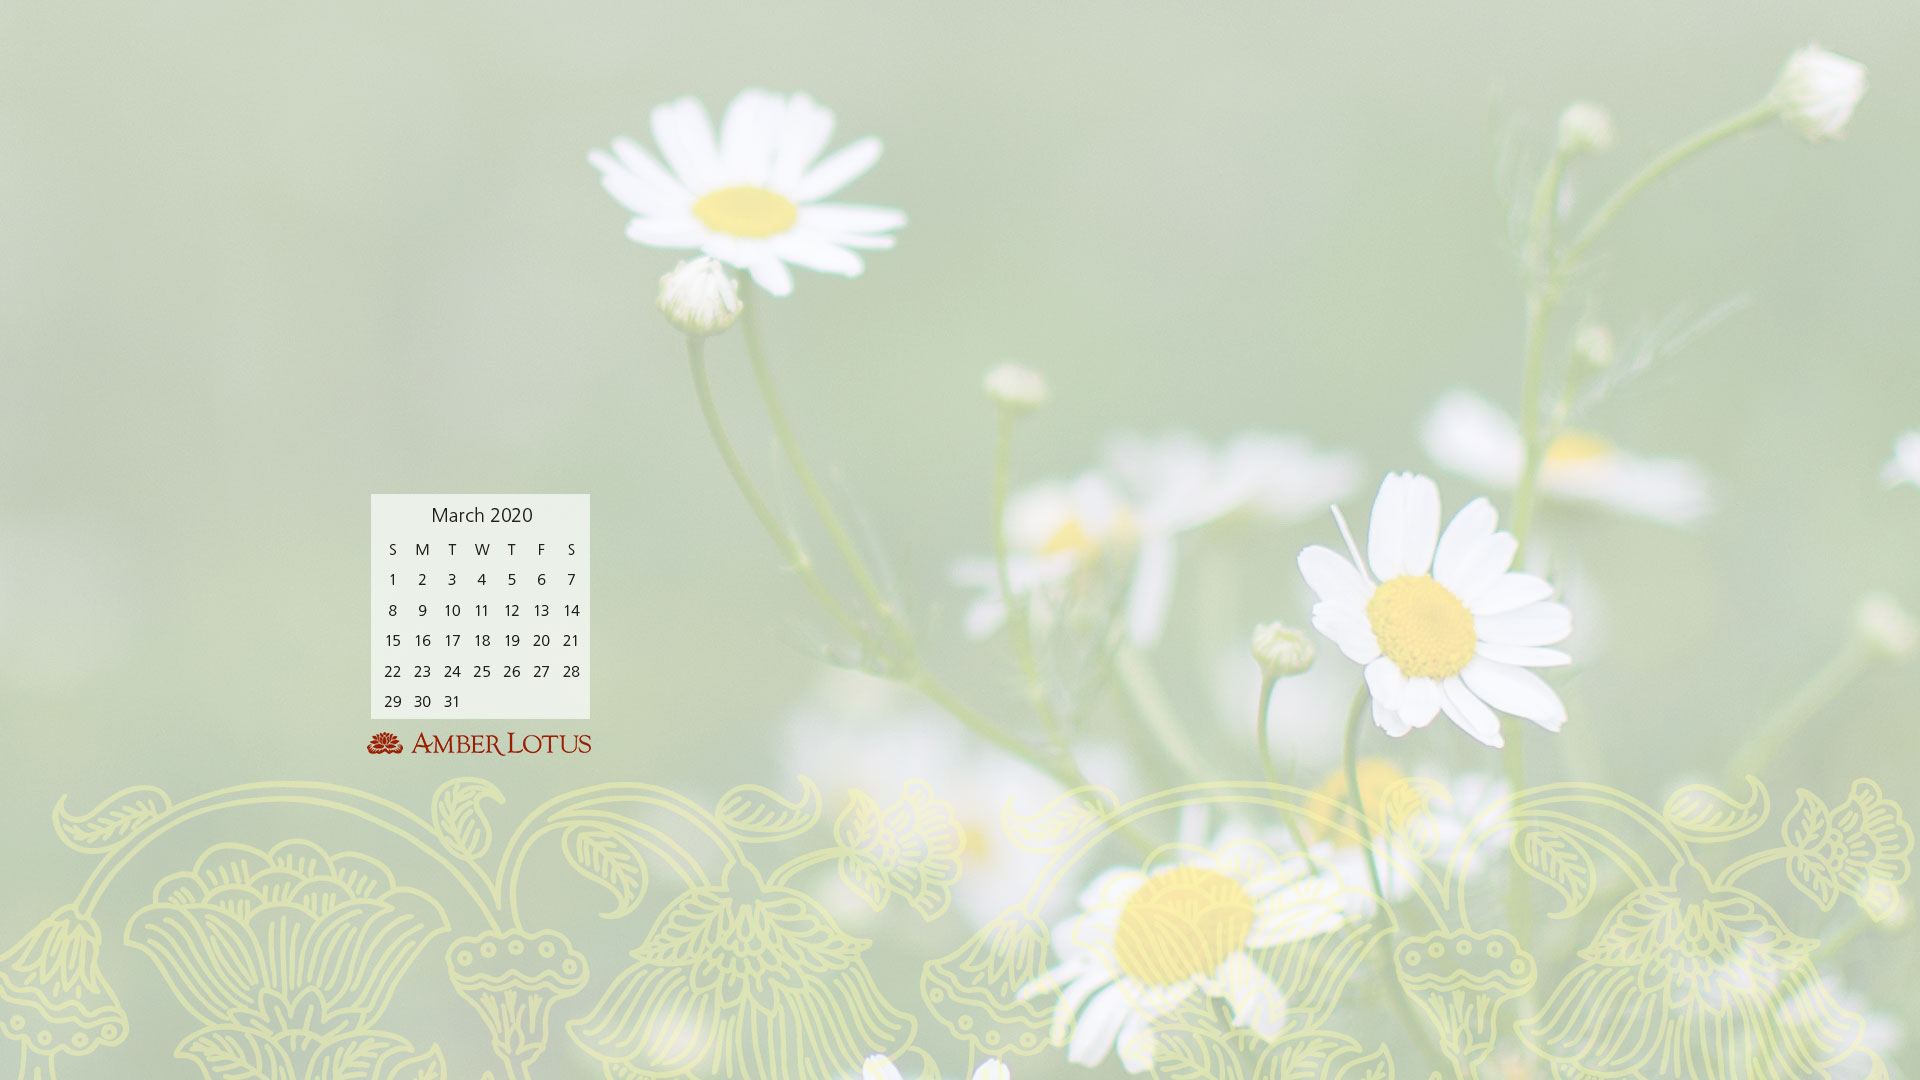 Desktop Wallpaper Calendar March 2020 Free To Download Amber